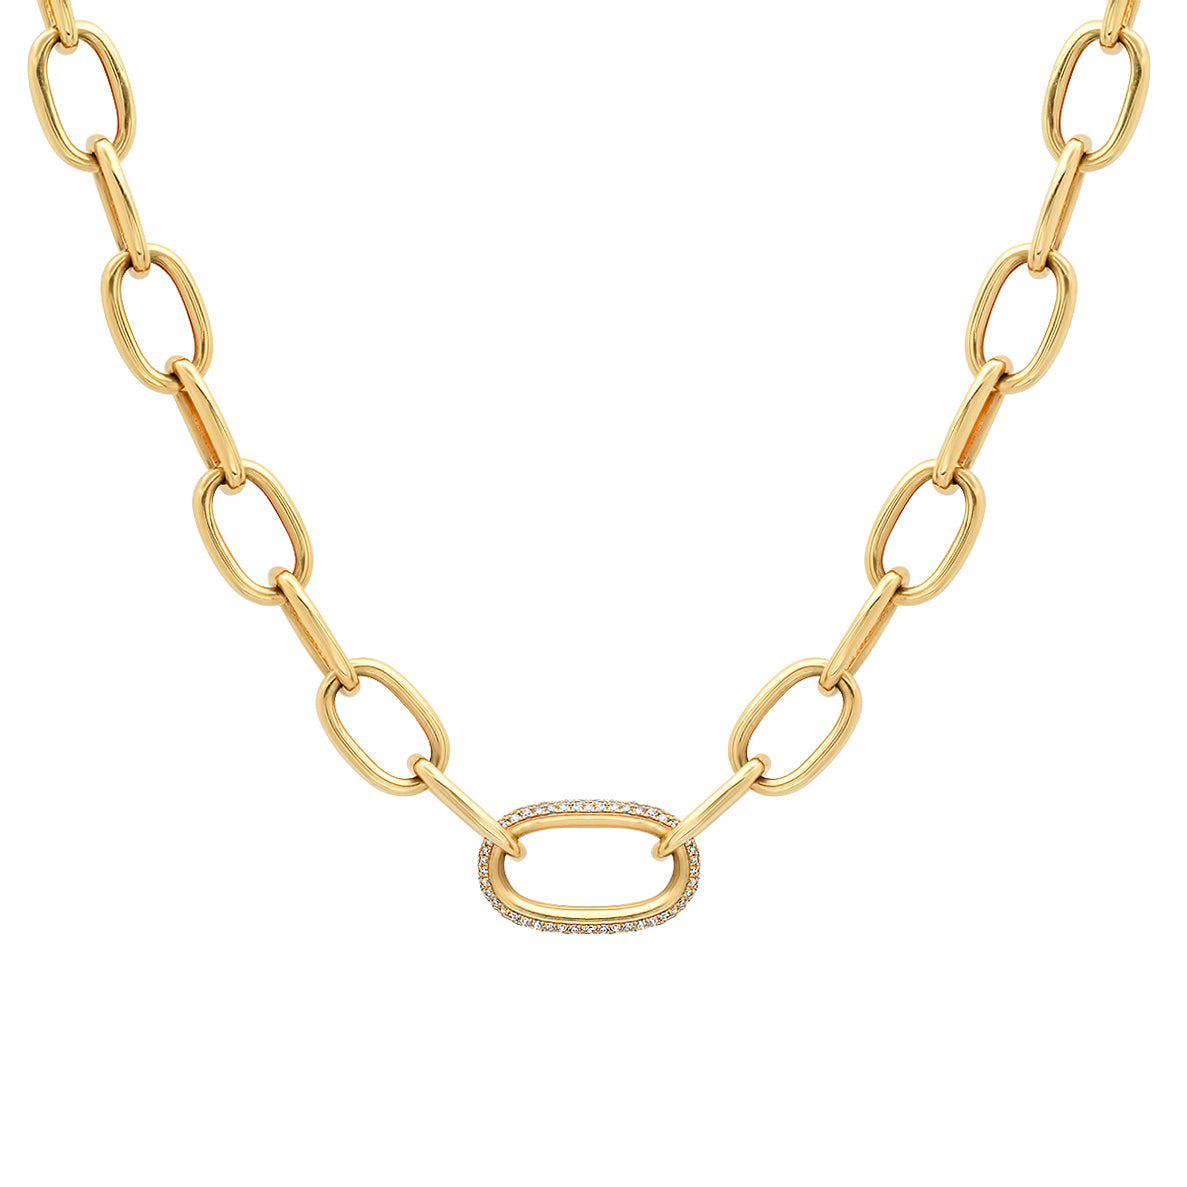 Heavy Oval Link Chain with Pave Diamond Center Link